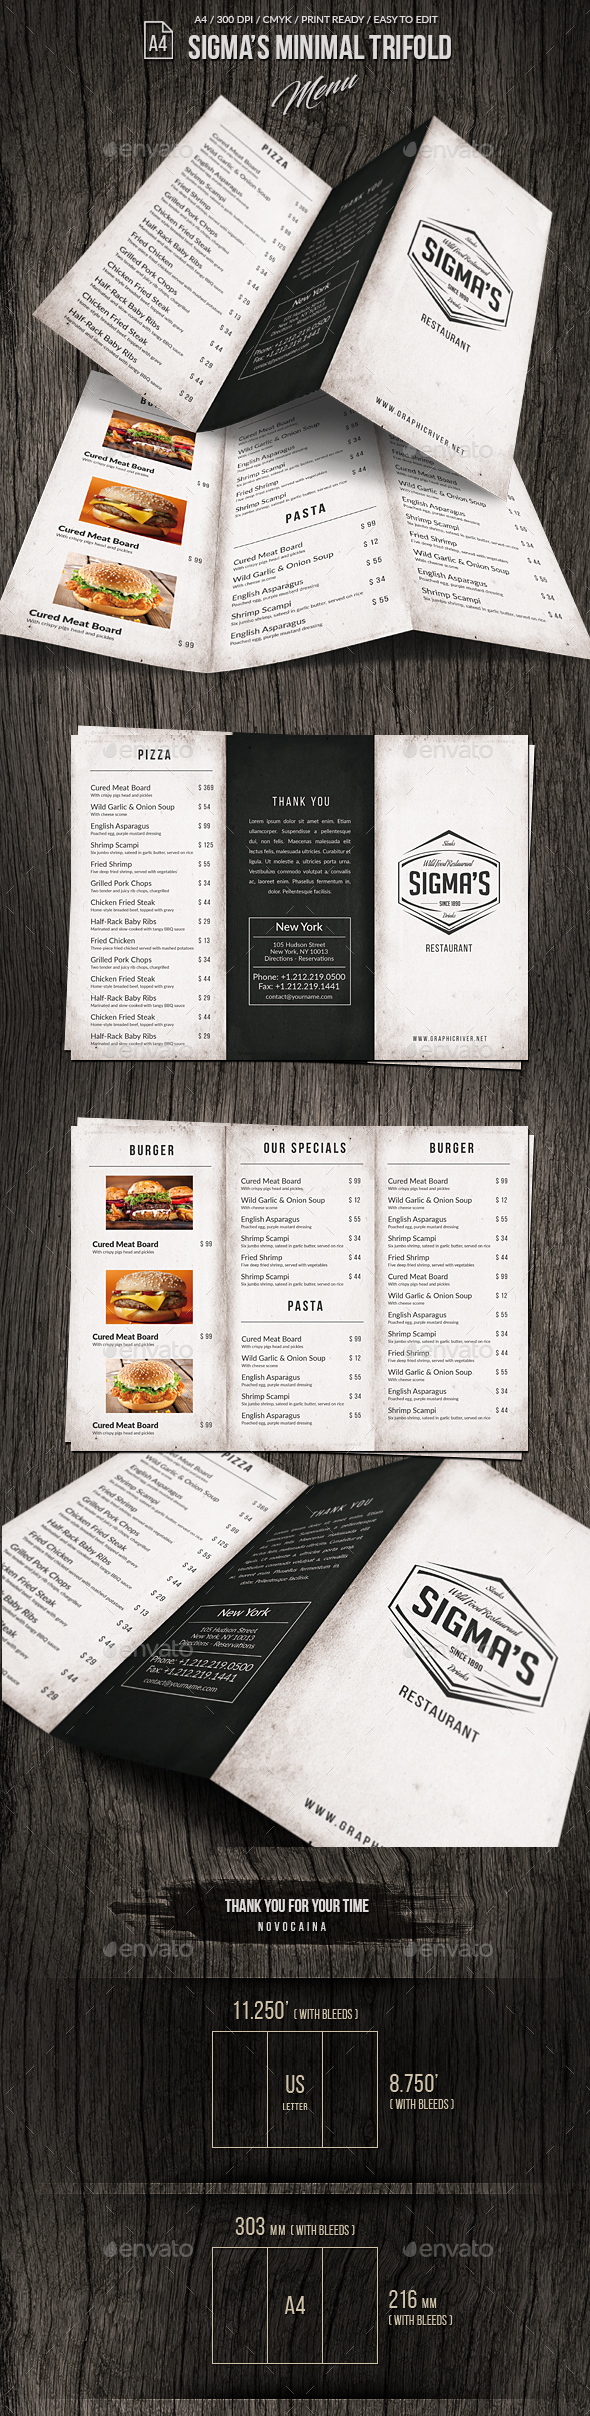 GraphicRiver Sigma Minimal Trifold Menu A4 and US Letter 20690033